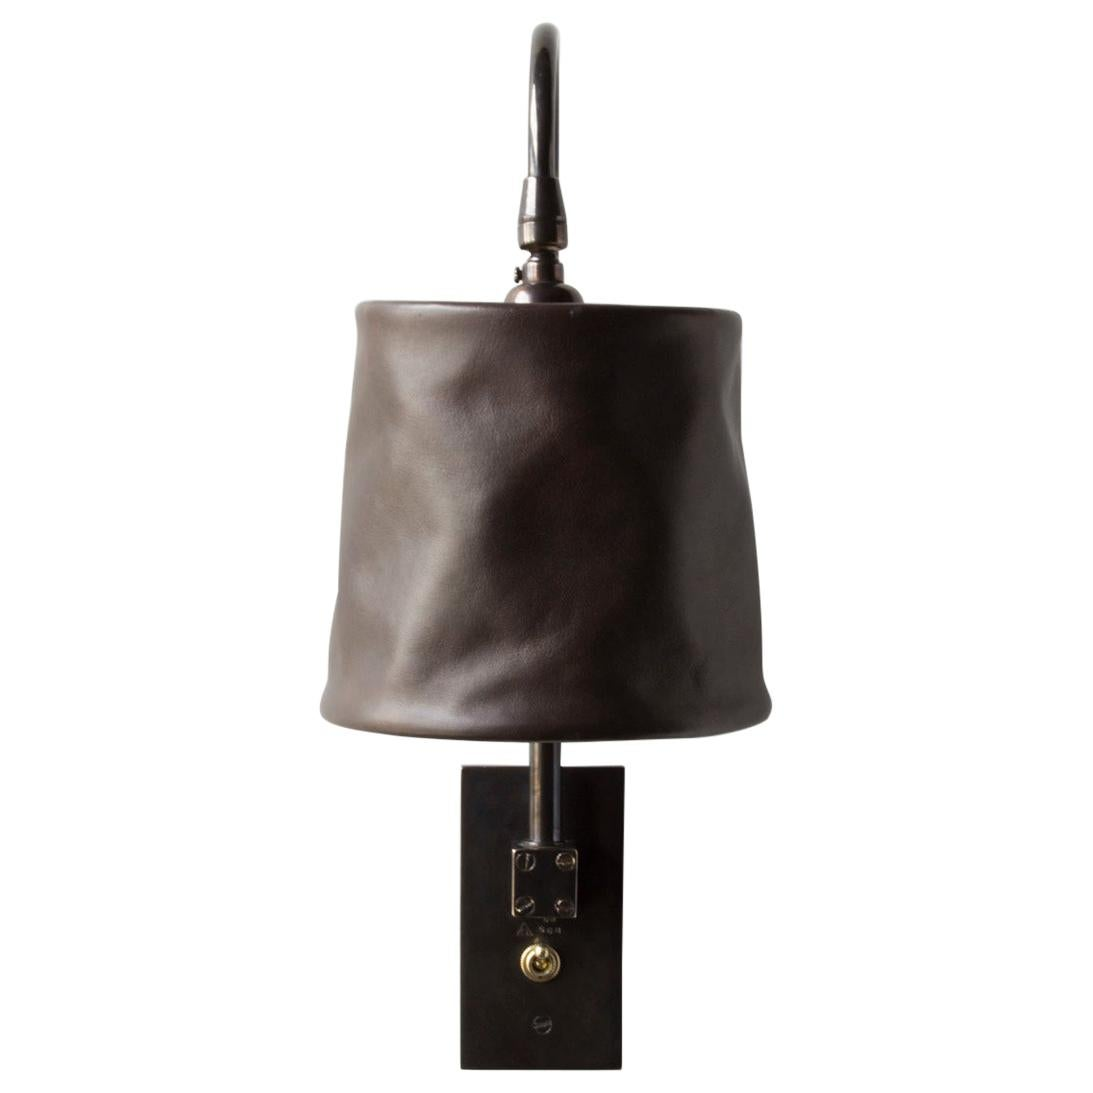 Series01 Large Sconce, Dark Patinated Brass, Sable Brown Leather Pivoting Shade